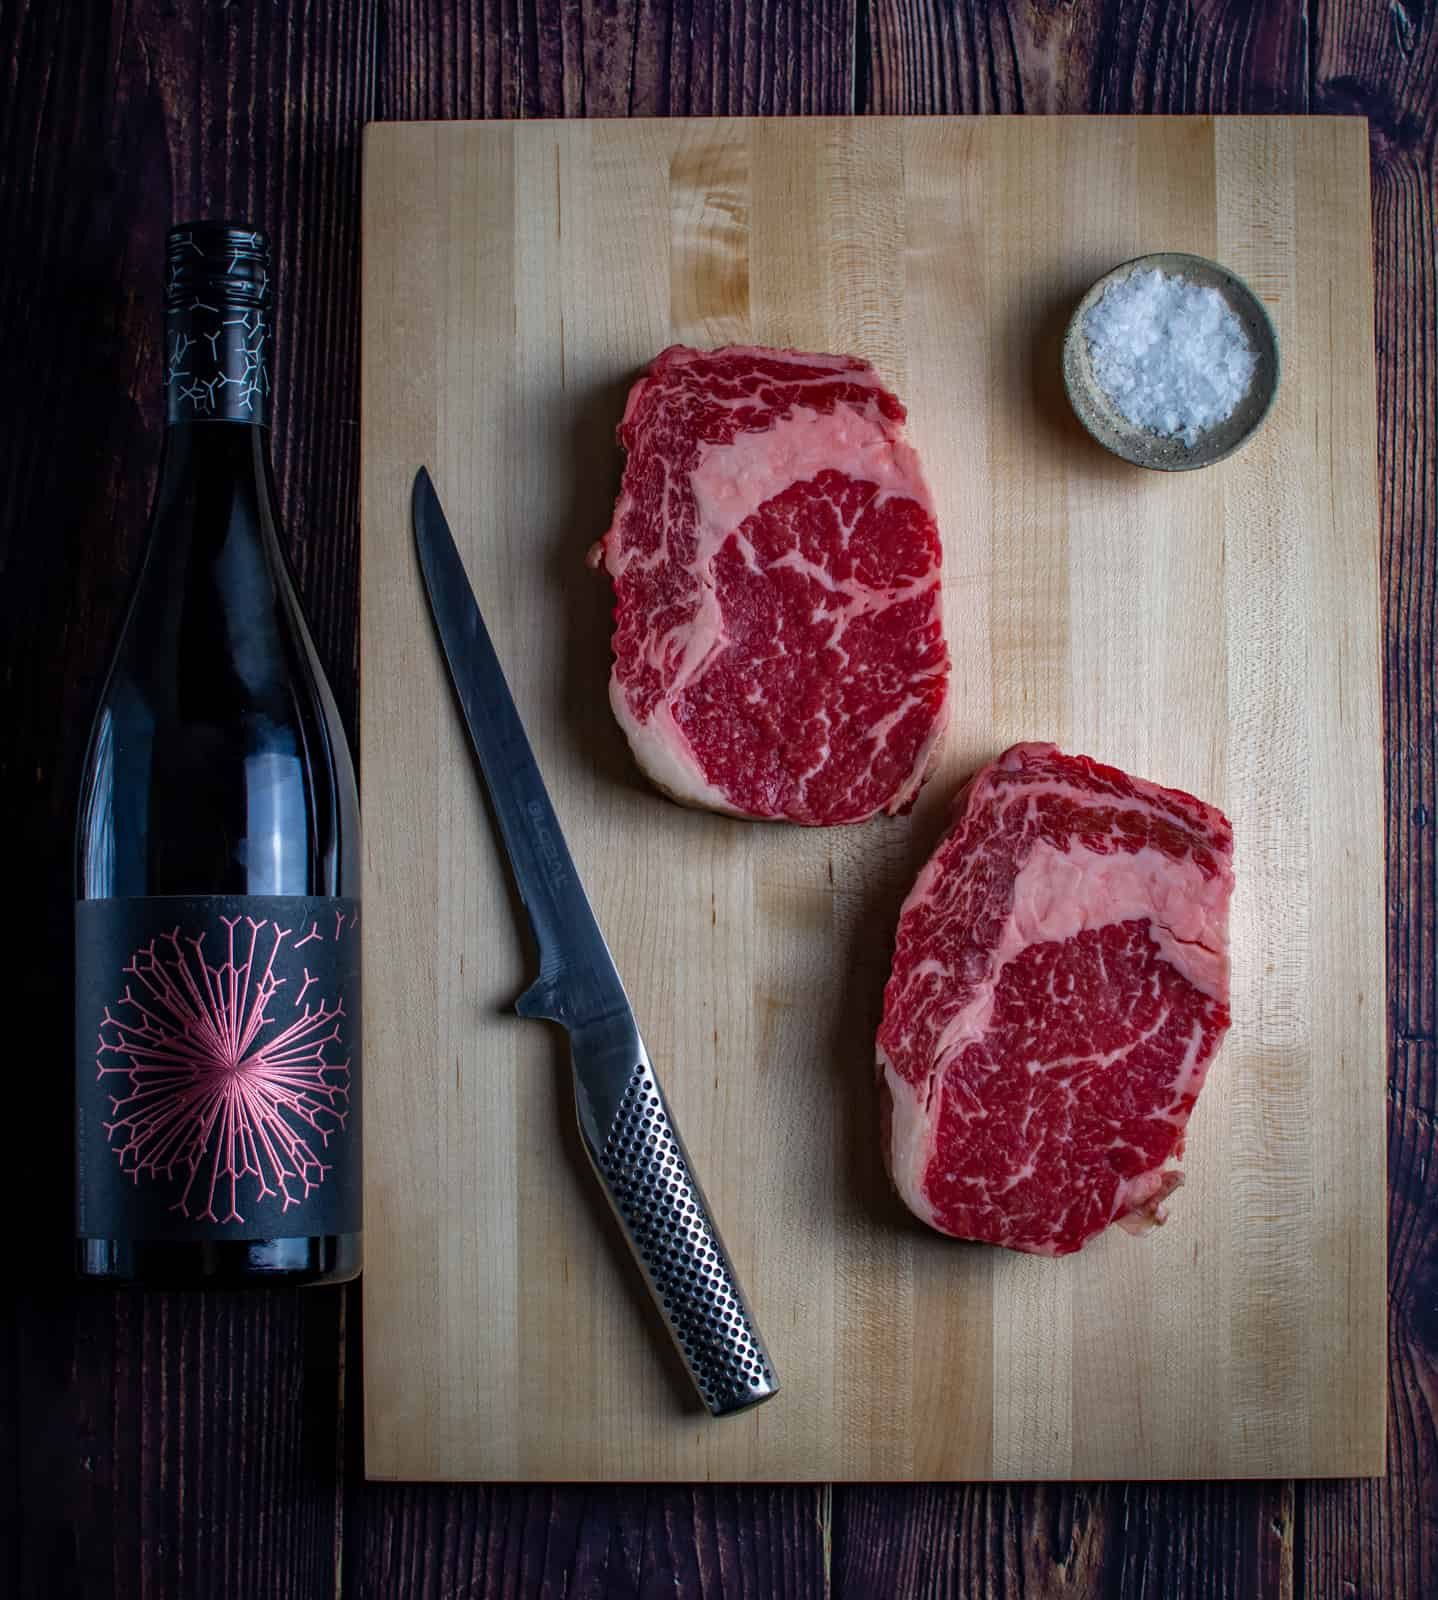 steak, red wine and a chef knife